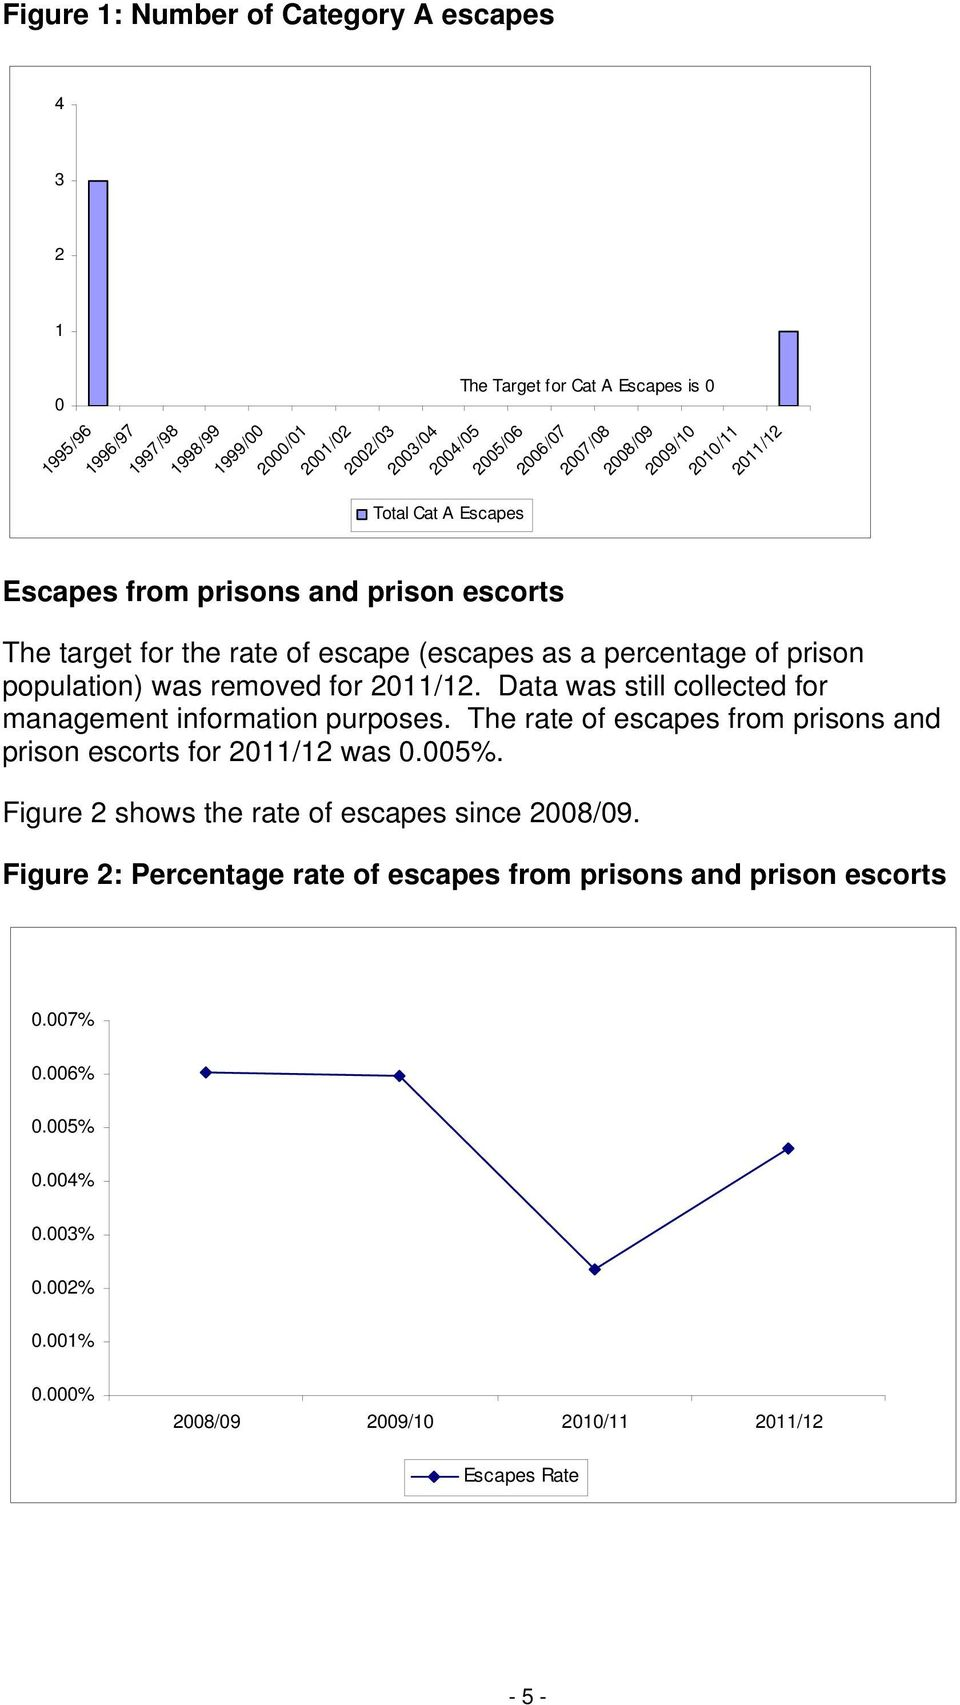 for 2011/12. Data was still collected for management information purposes. The rate of escapes from prisons and prison escorts for 2011/12 was 0.005%.